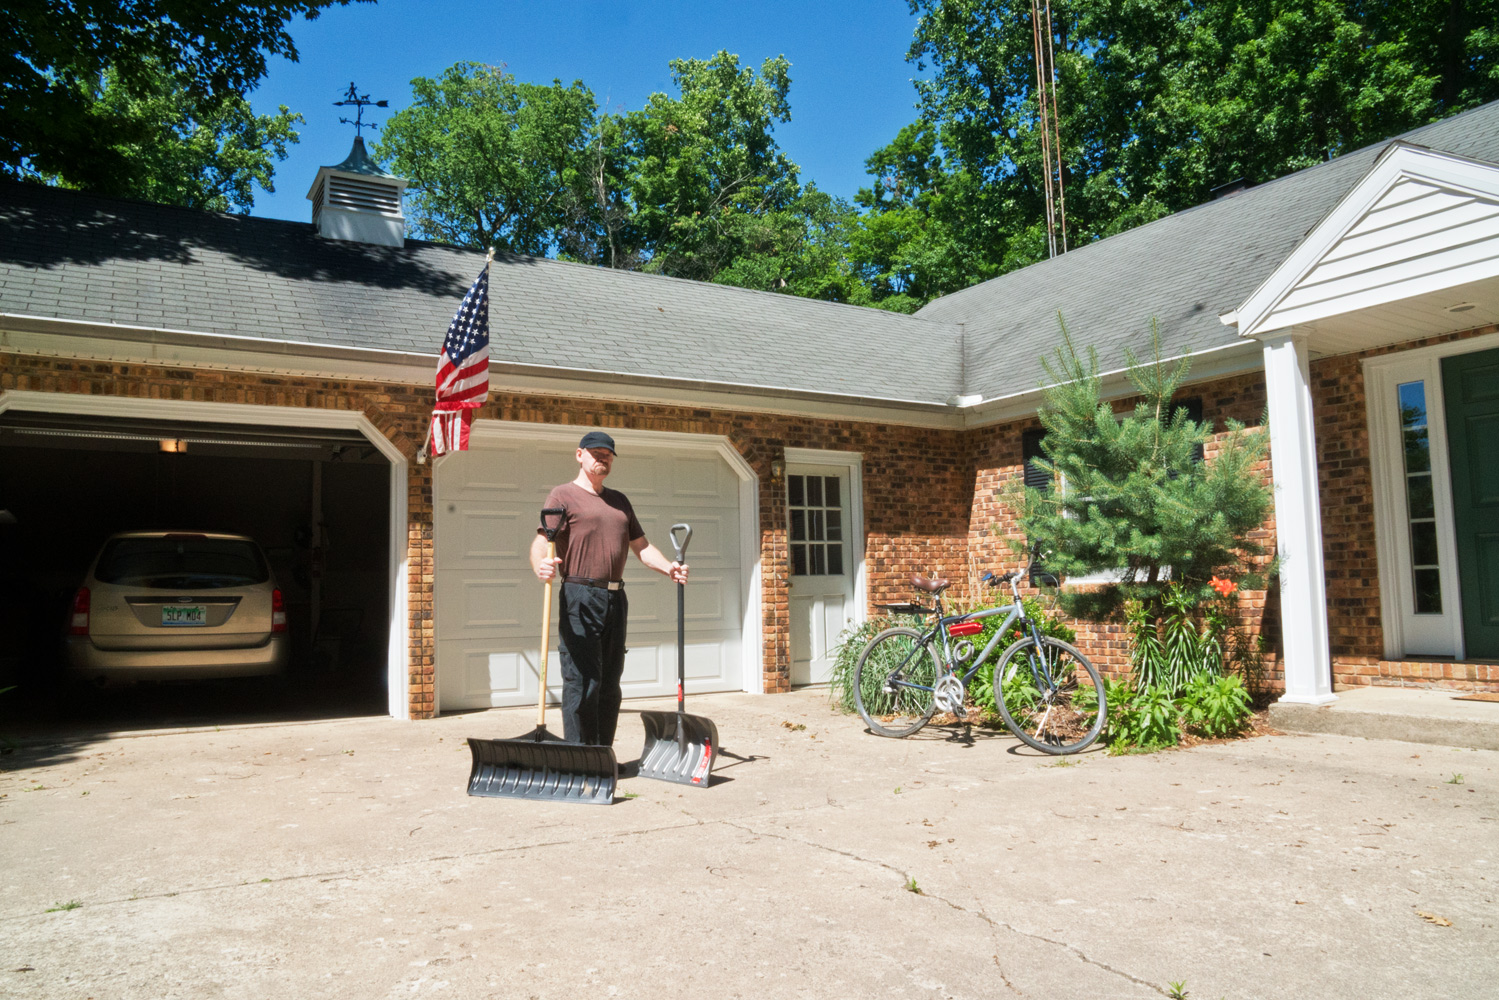 Rebel Joe, proudly showing off his snow shovels on a hot day in June. Way to go, Joe!